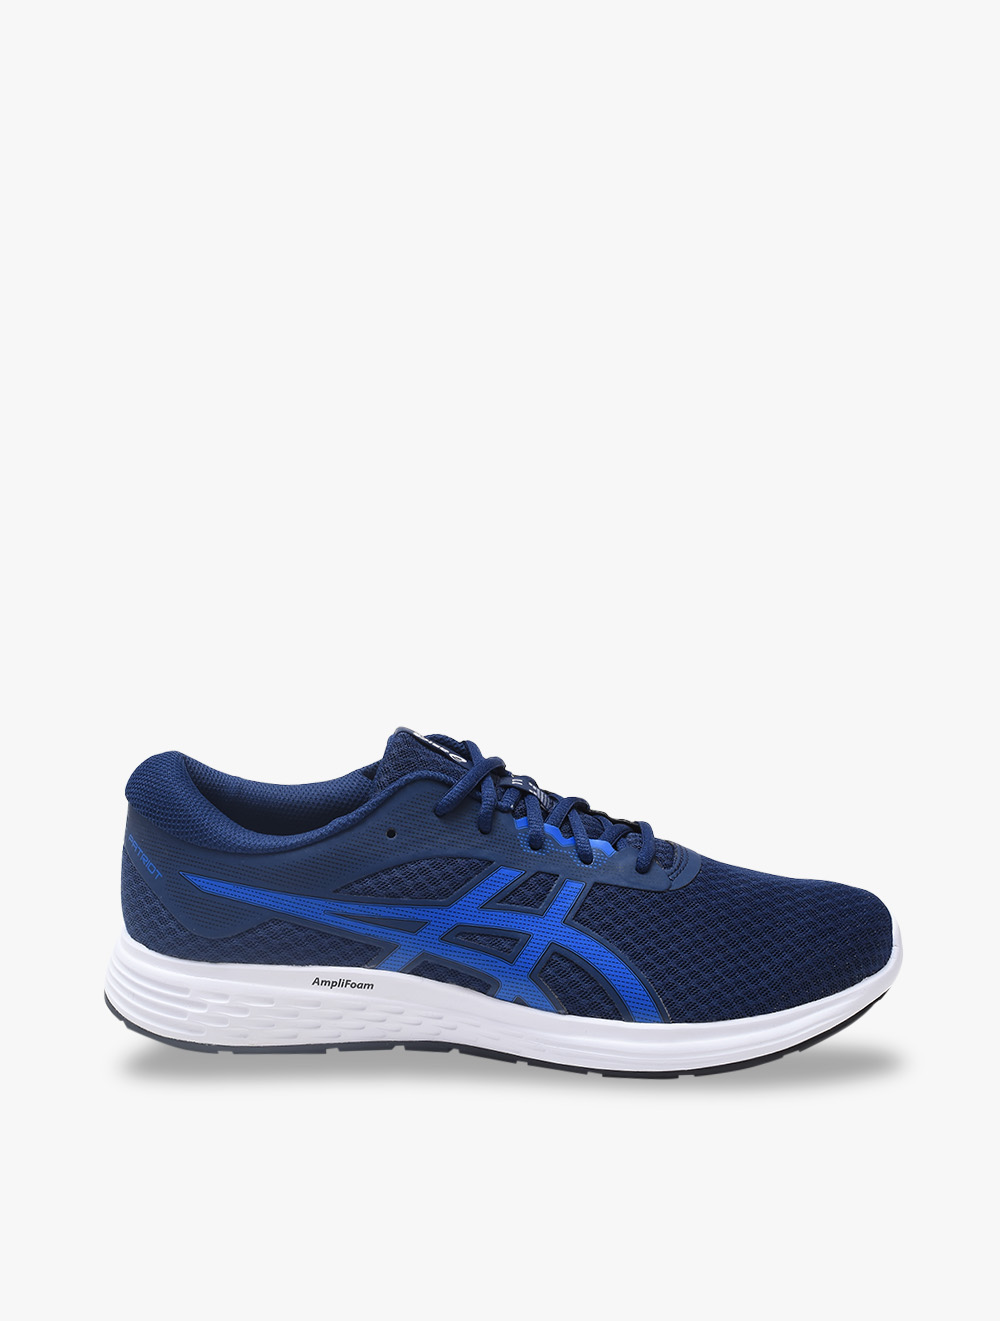 Shop Men's Shoes & Accessories From Asics Planet Sports on